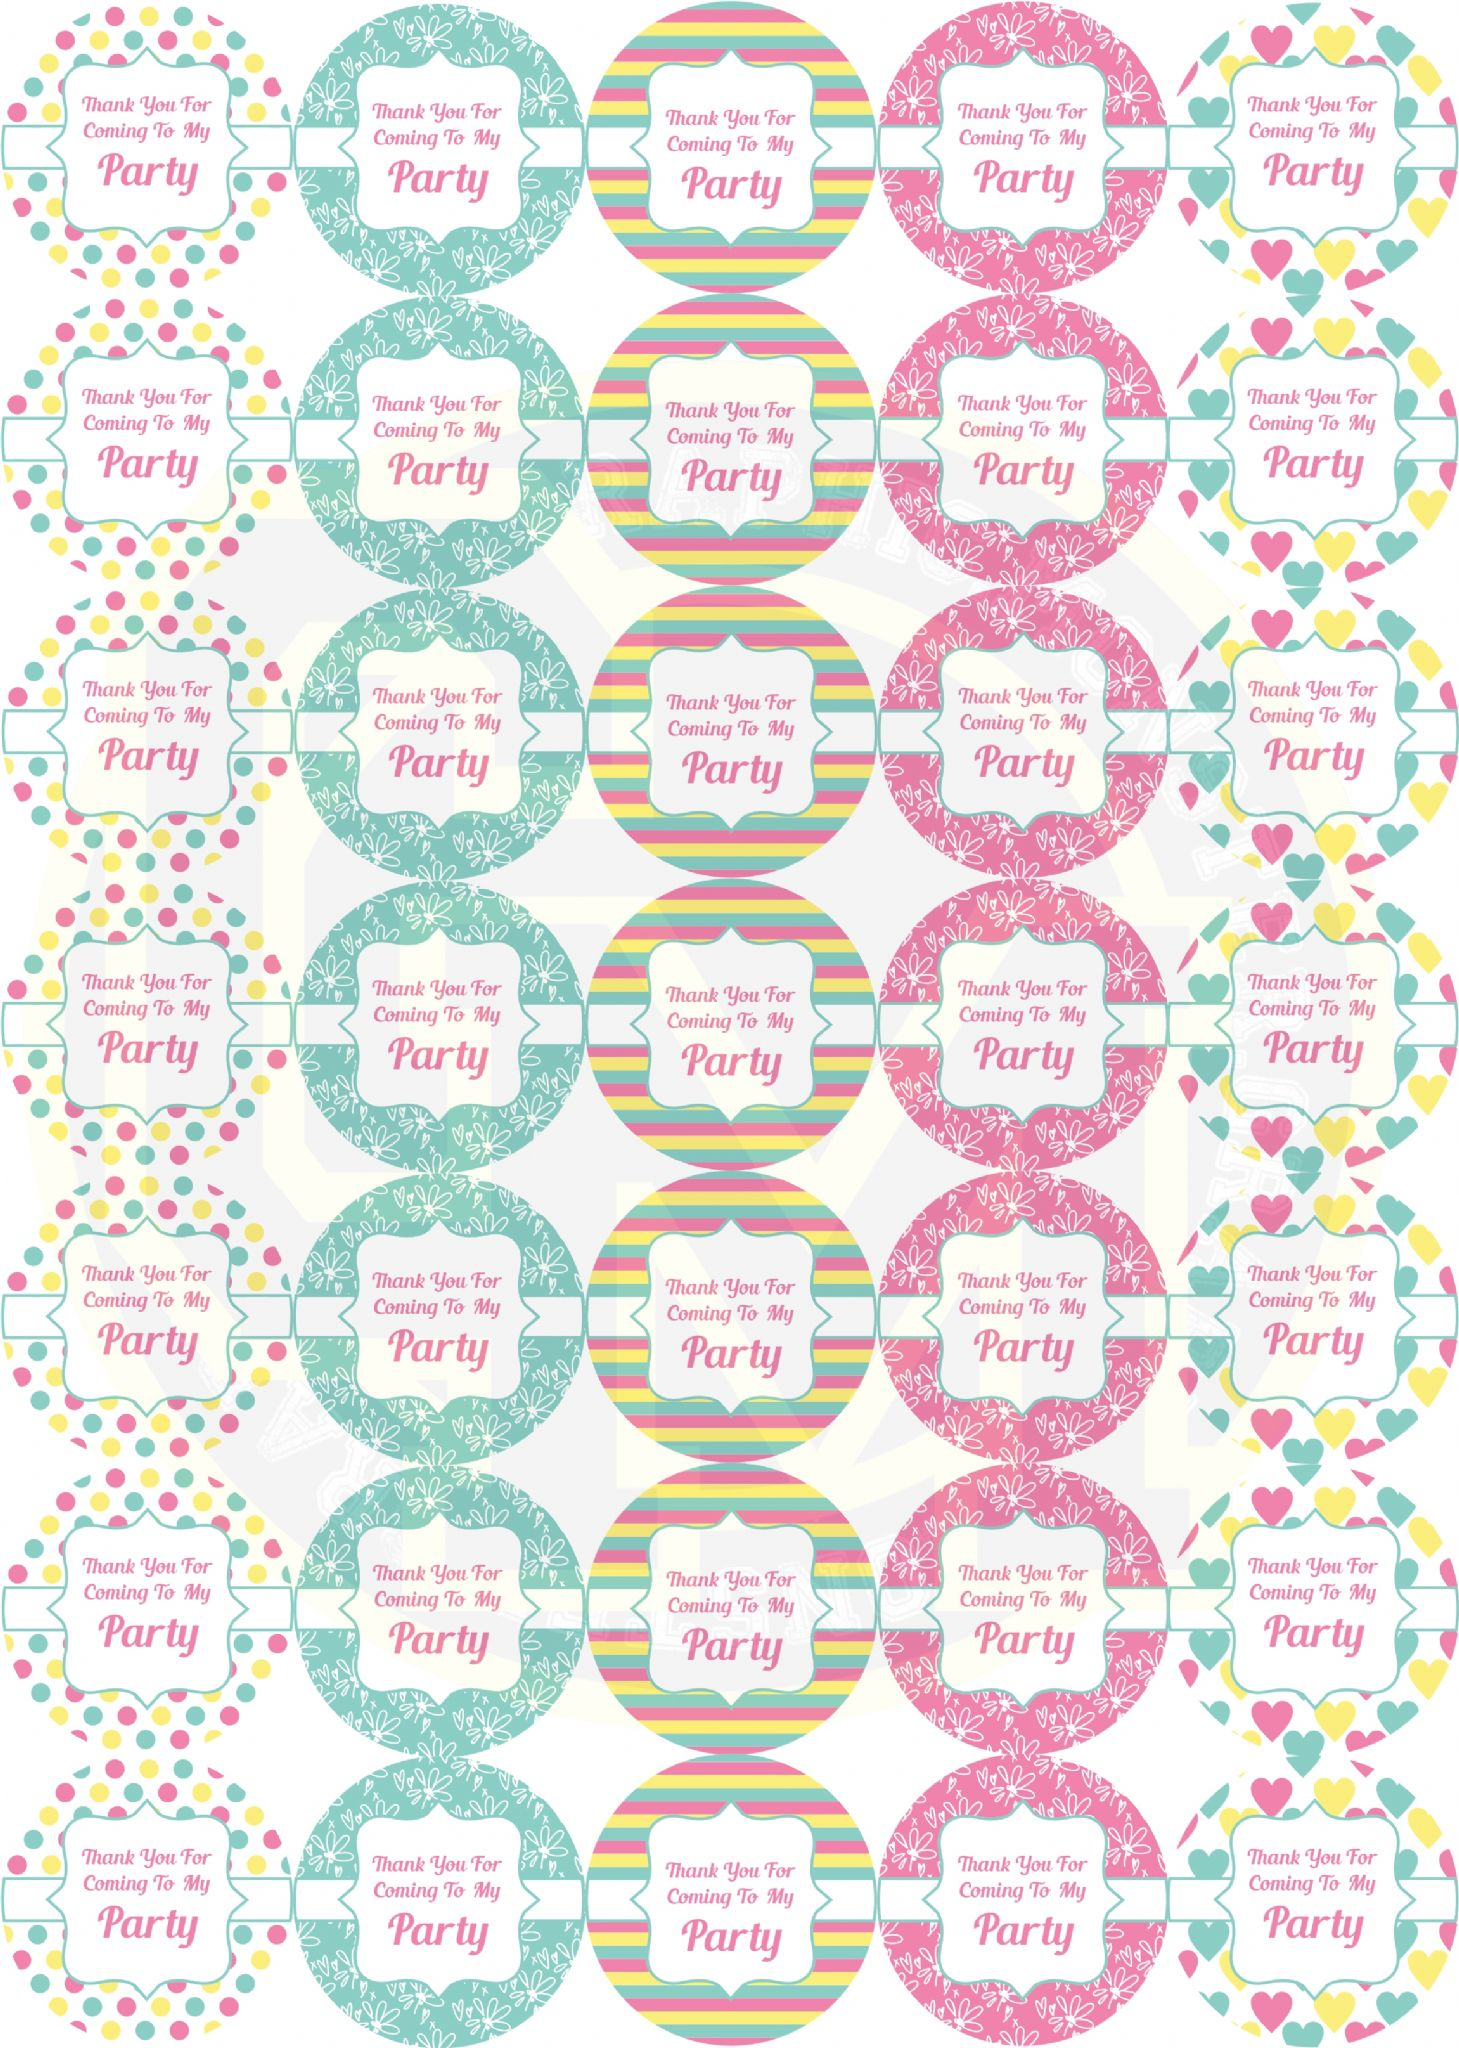 birthday celebration stickers ; pretty-birthday-party-stickers-sweet-cone-party-bag-labels-sticker-quantity-175-stickers-5-sheets-7950-p